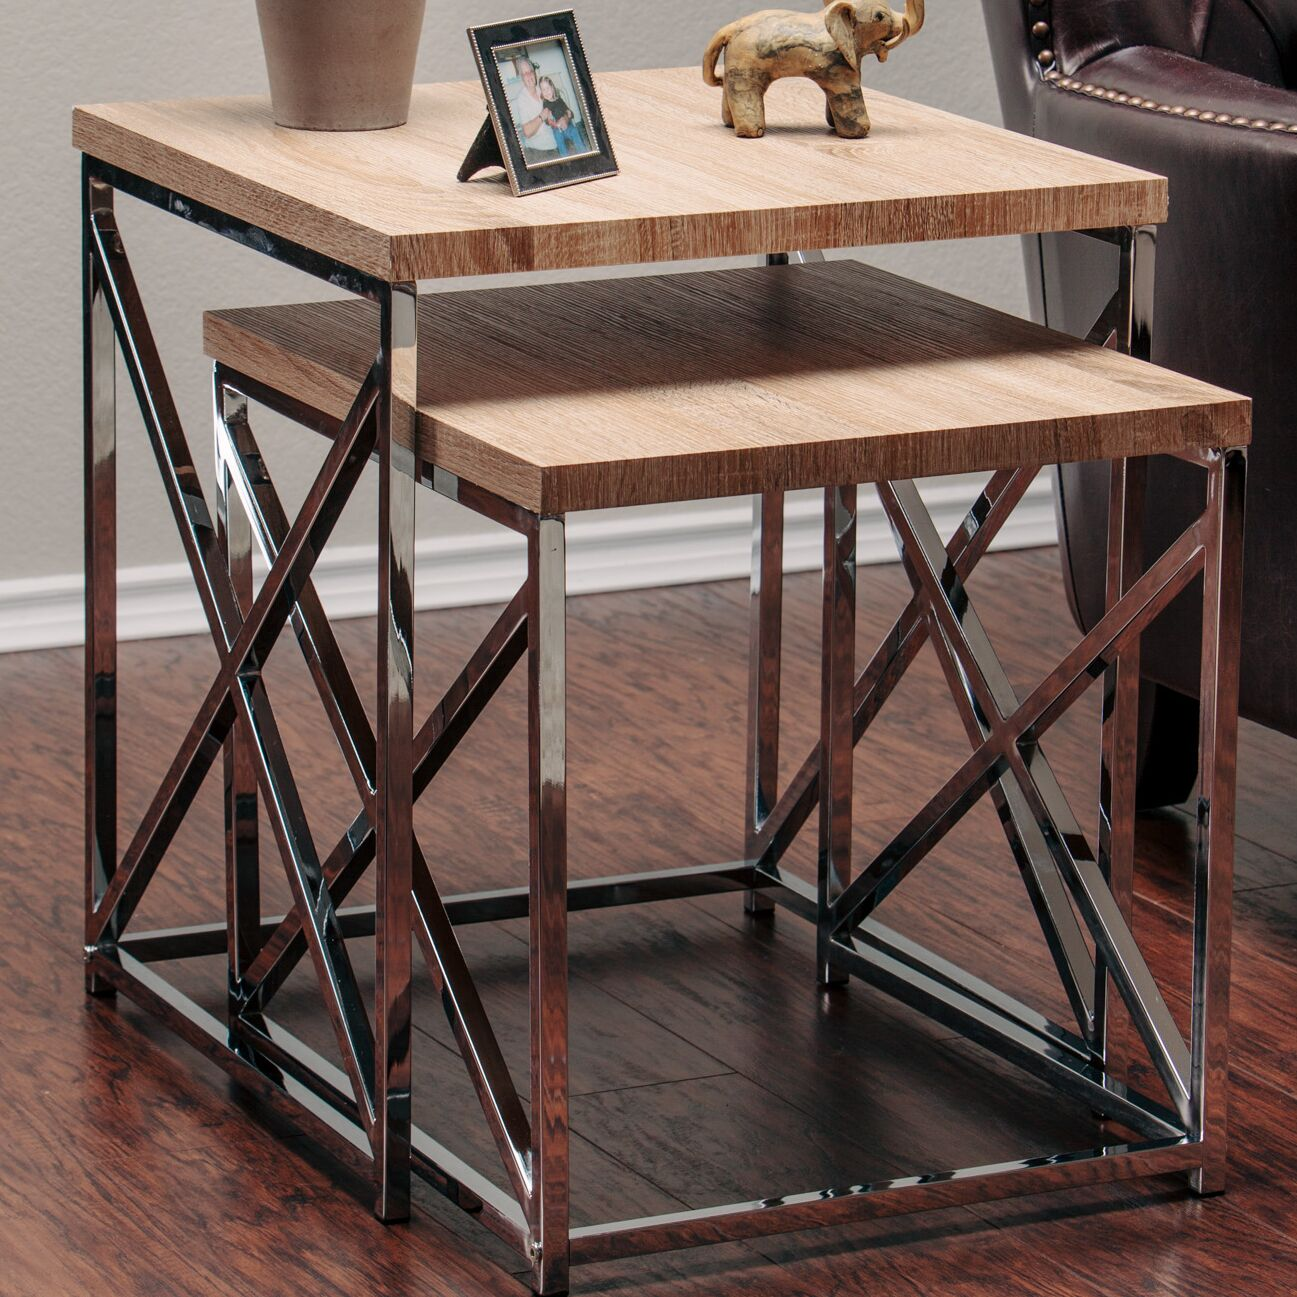 2 Piece Nesting Tables Color: Natural